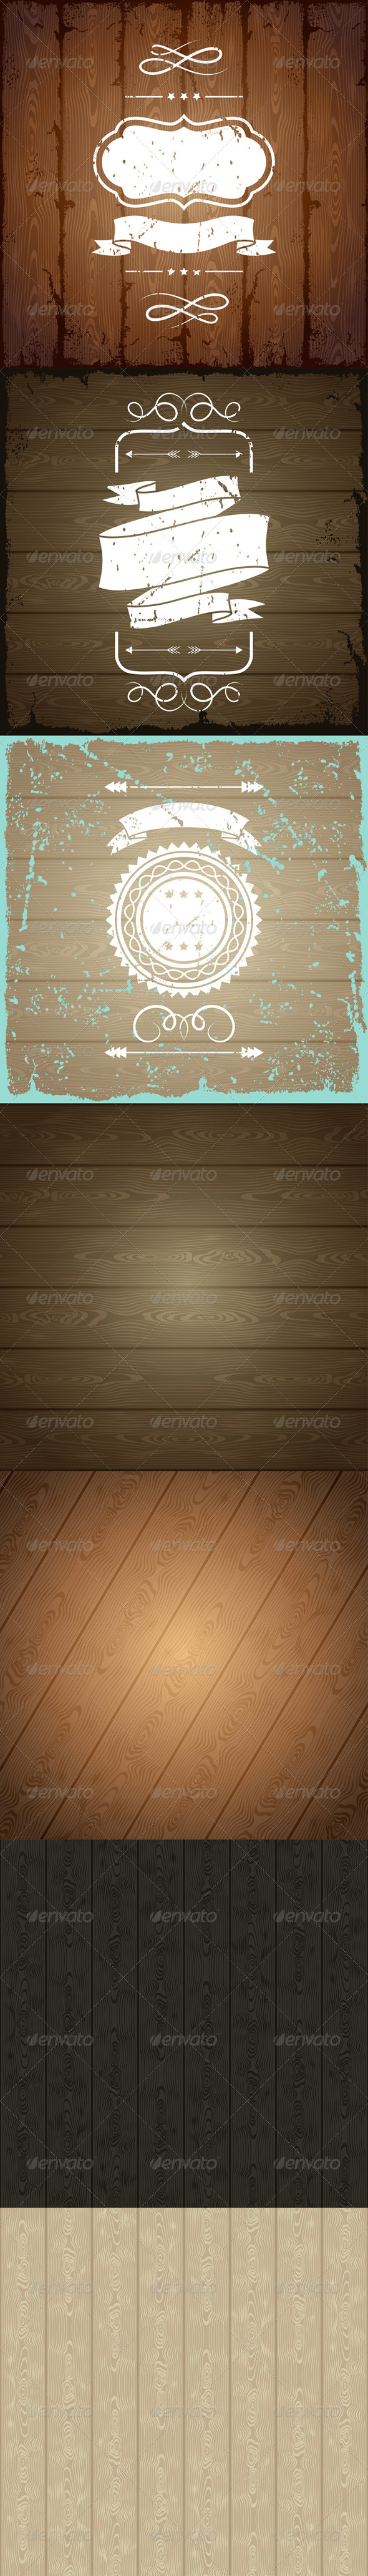 Wooden Texture Backgrounds. - Backgrounds Decorative